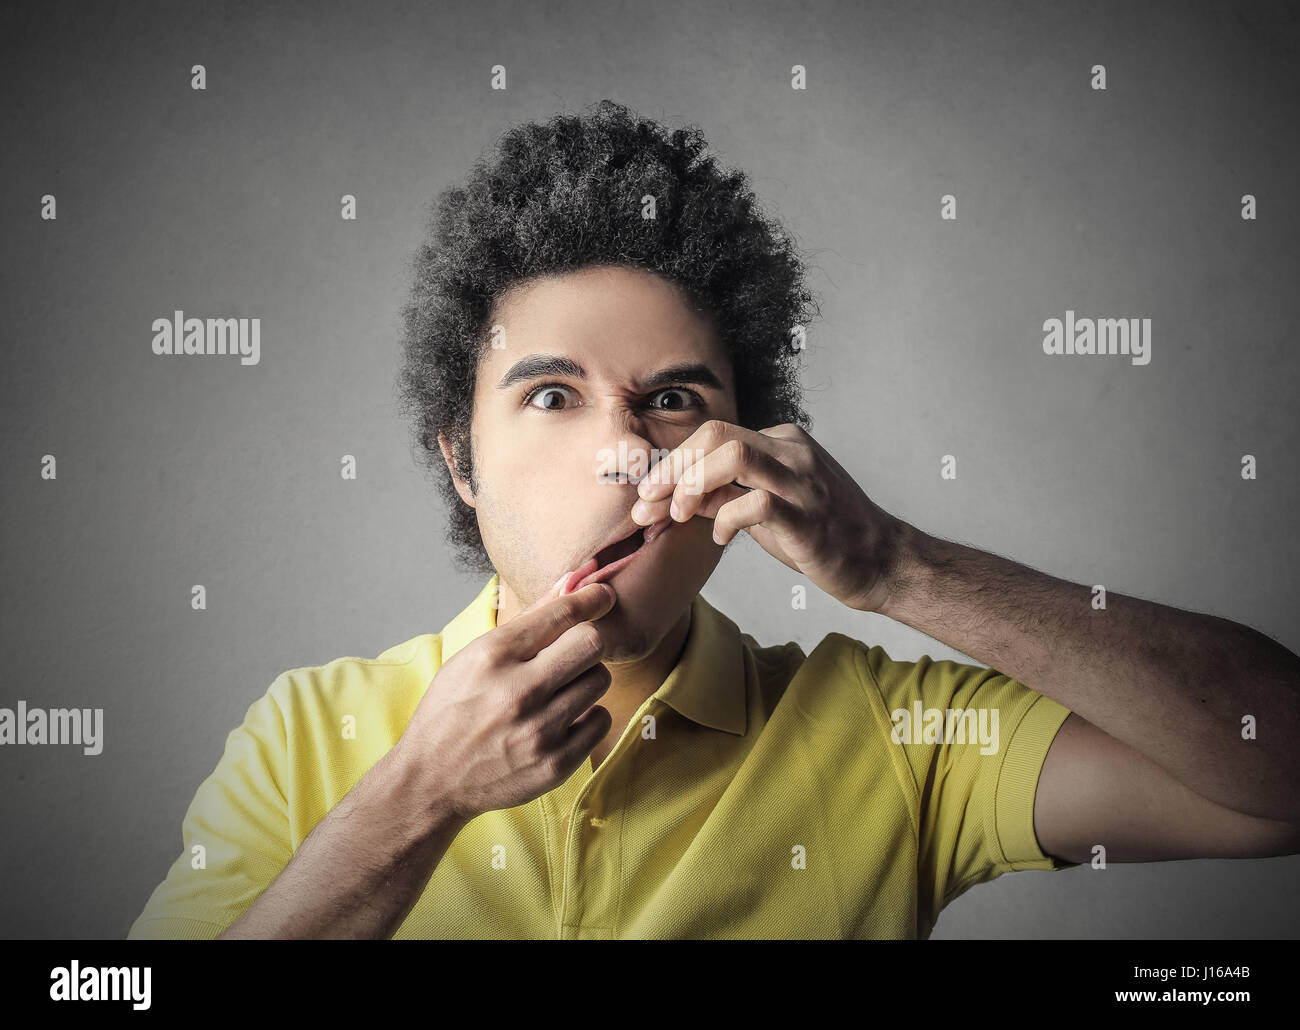 Young man making a grimace - Stock Image